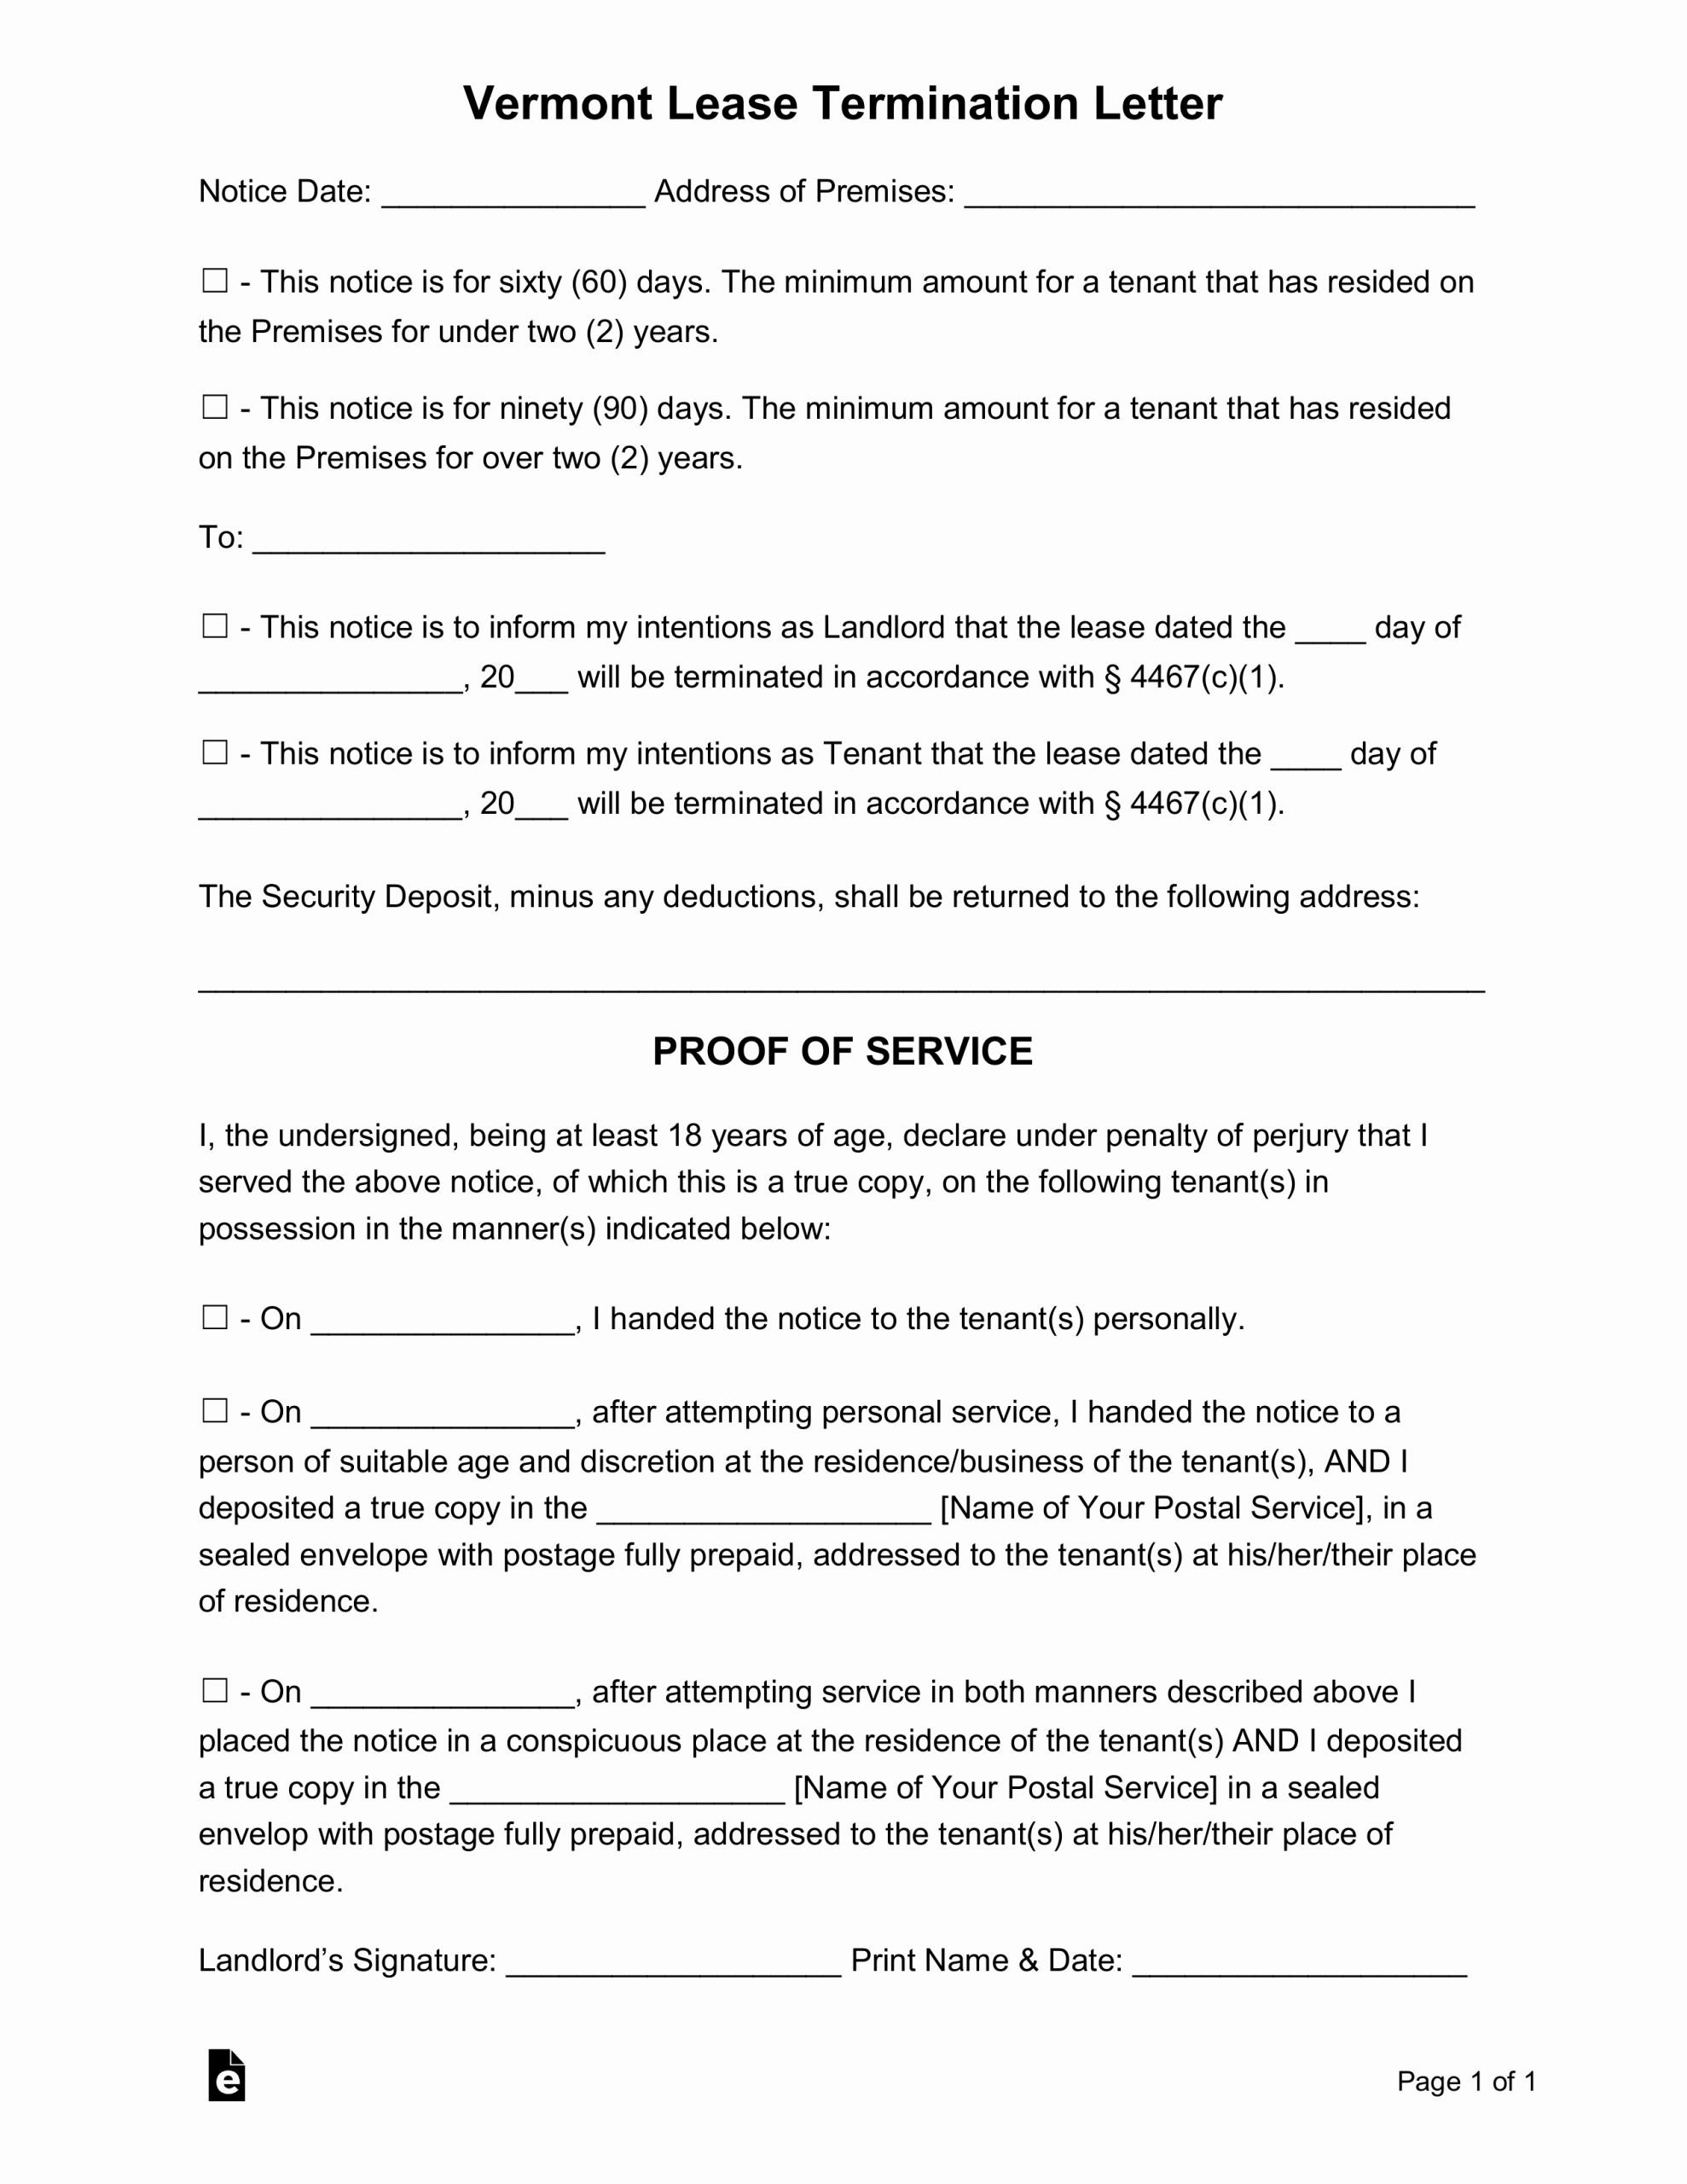 60 Day Notice to Landlord Pdf Fresh Free Vermont Lease Termination Letter form